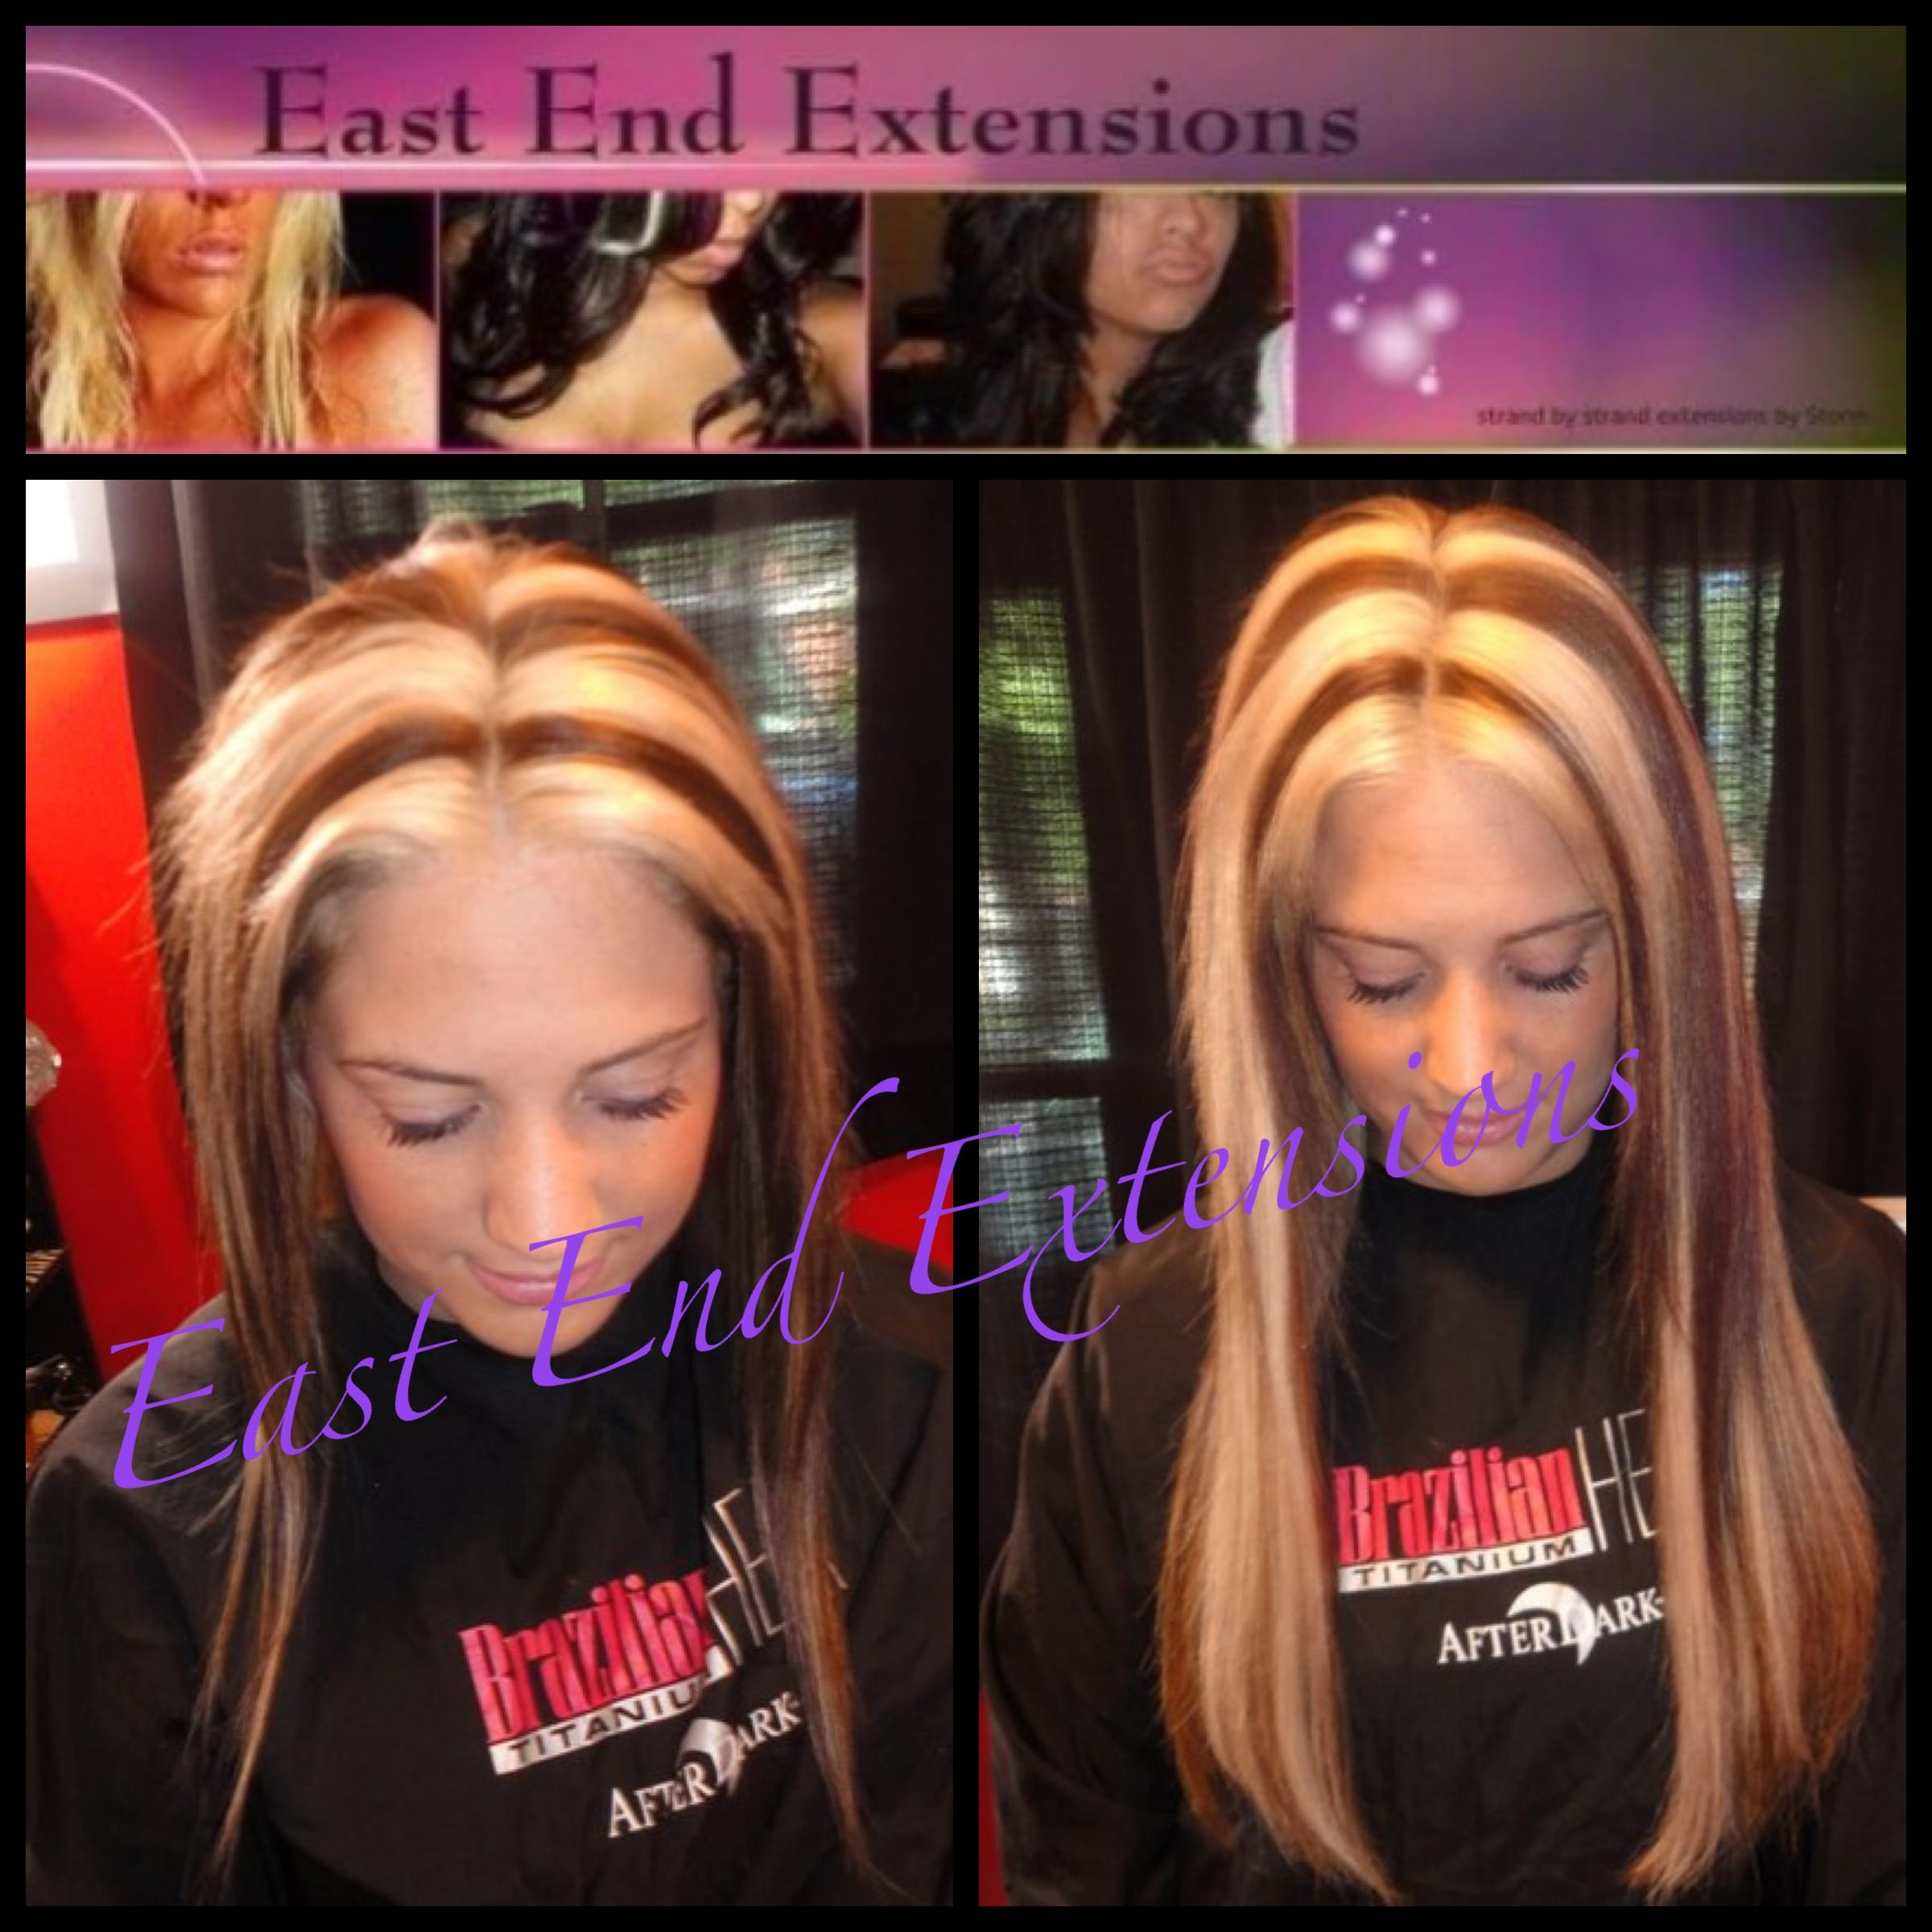 BEST PRICES GUARANTEED FOR THE BEST QUALITY HAIR AND JOB